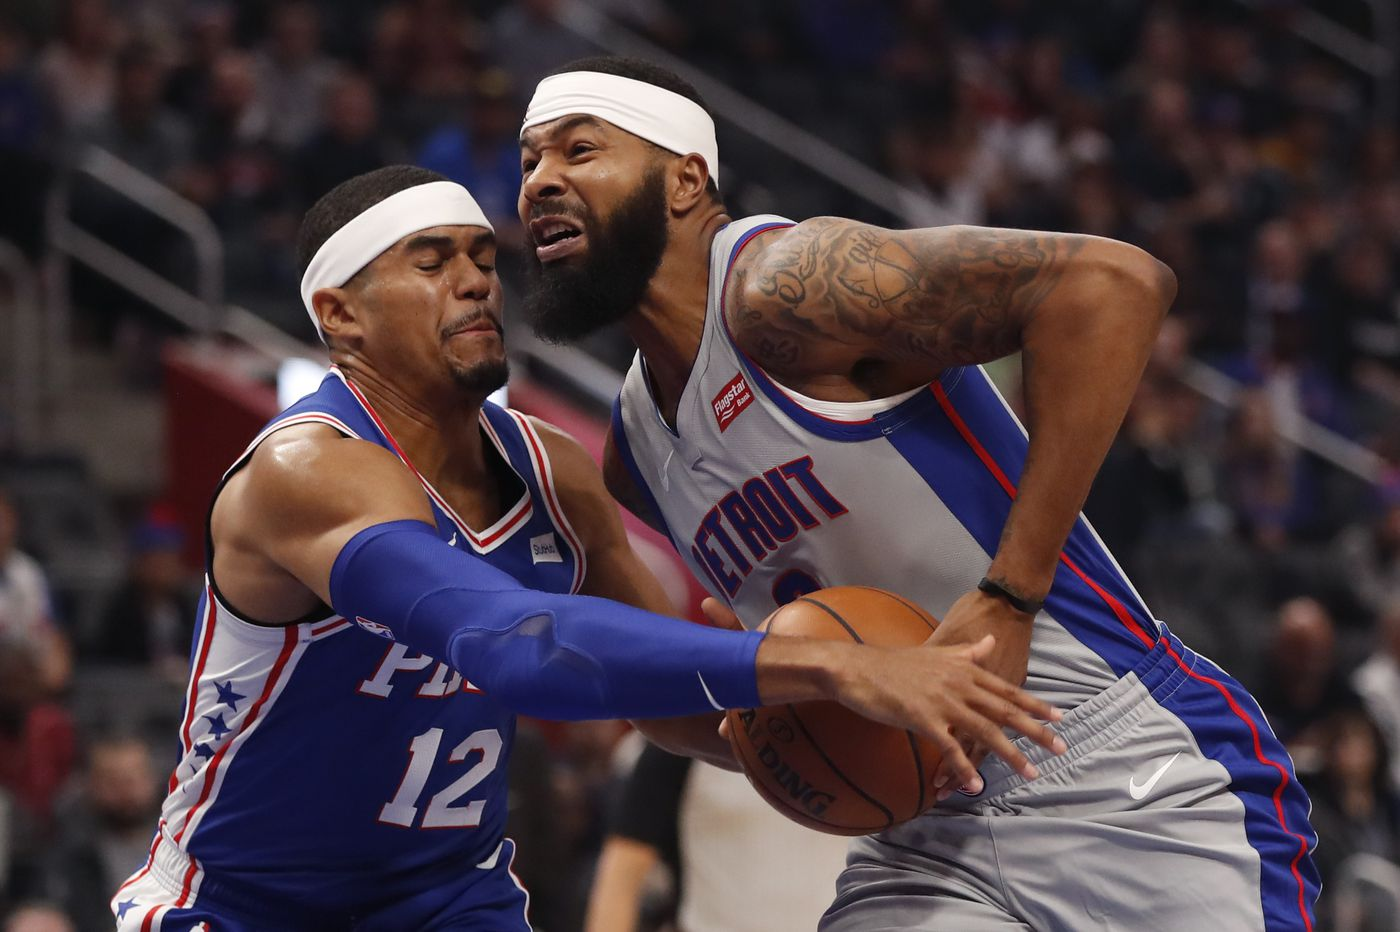 Without Joel Embiid, Sixers take 117-111 road win over the Detroit Pistons